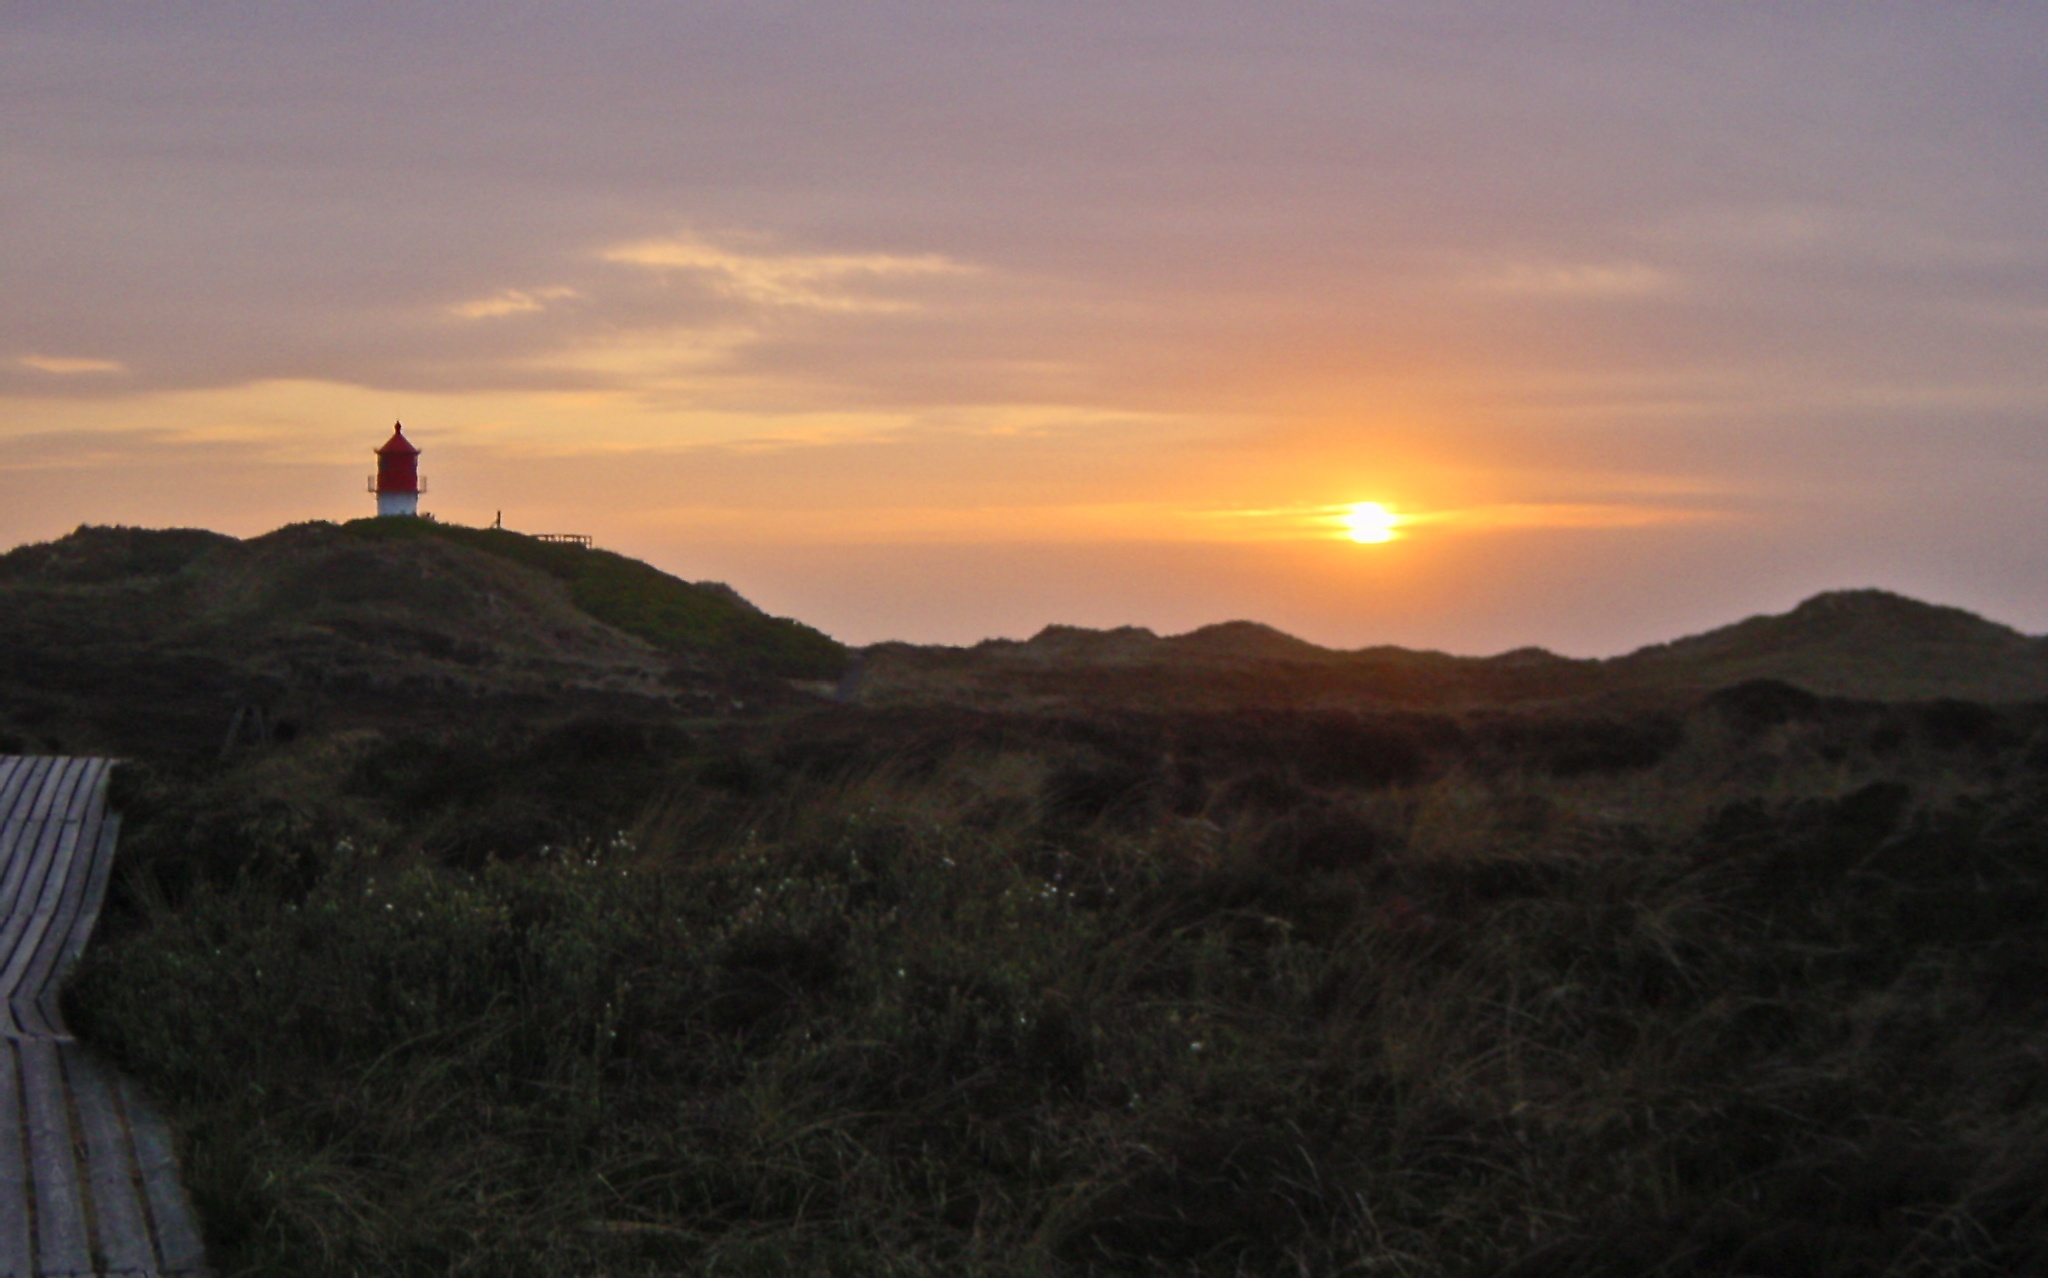 Sunset at Amrum Lighthouse by dirtyharriet